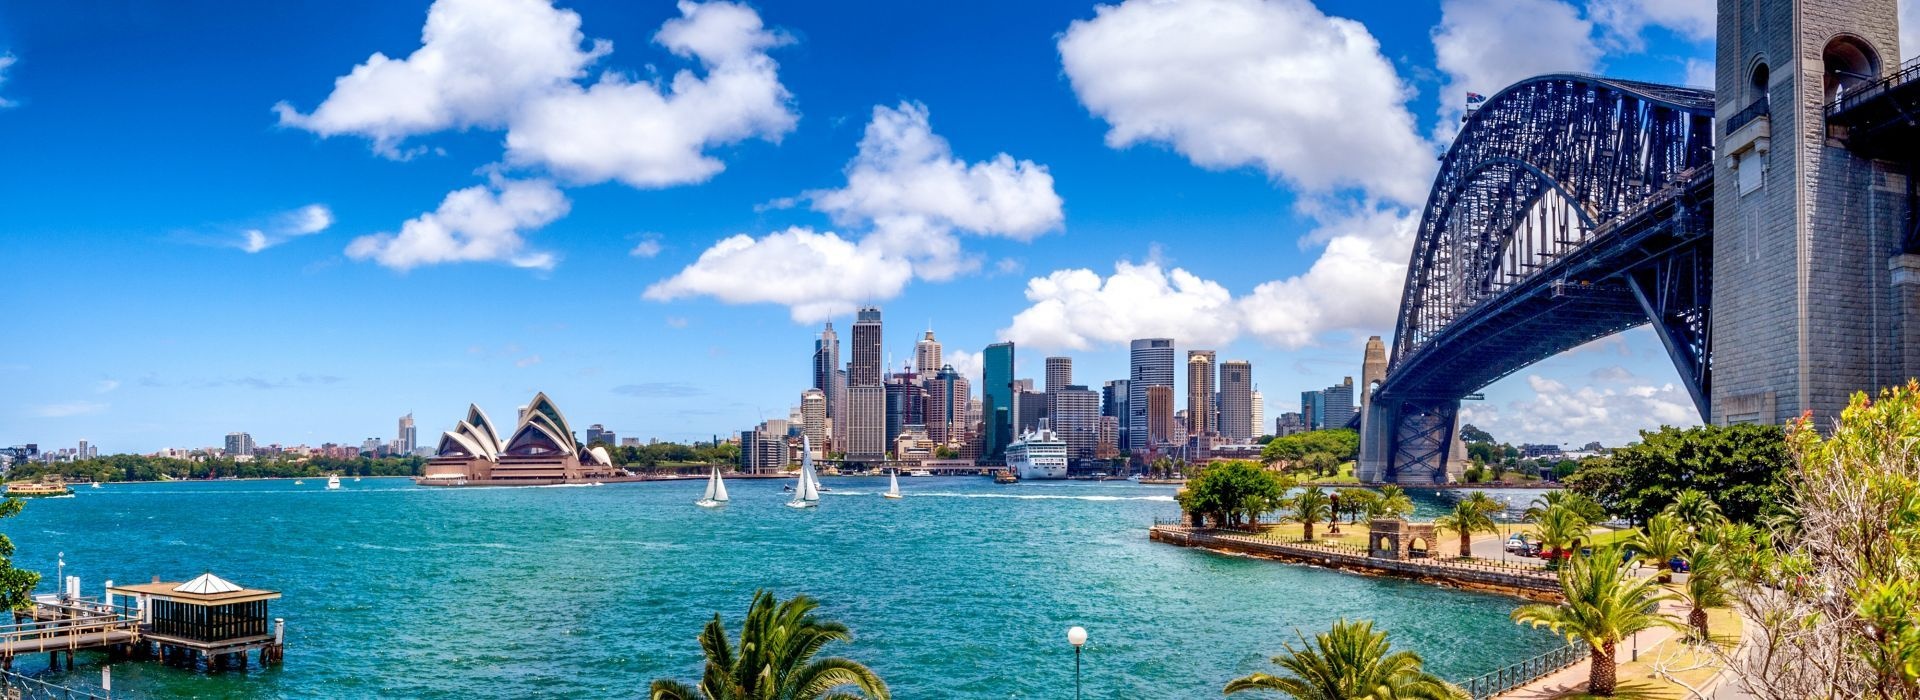 Boat tours, water sports and marine wildlife in Australia